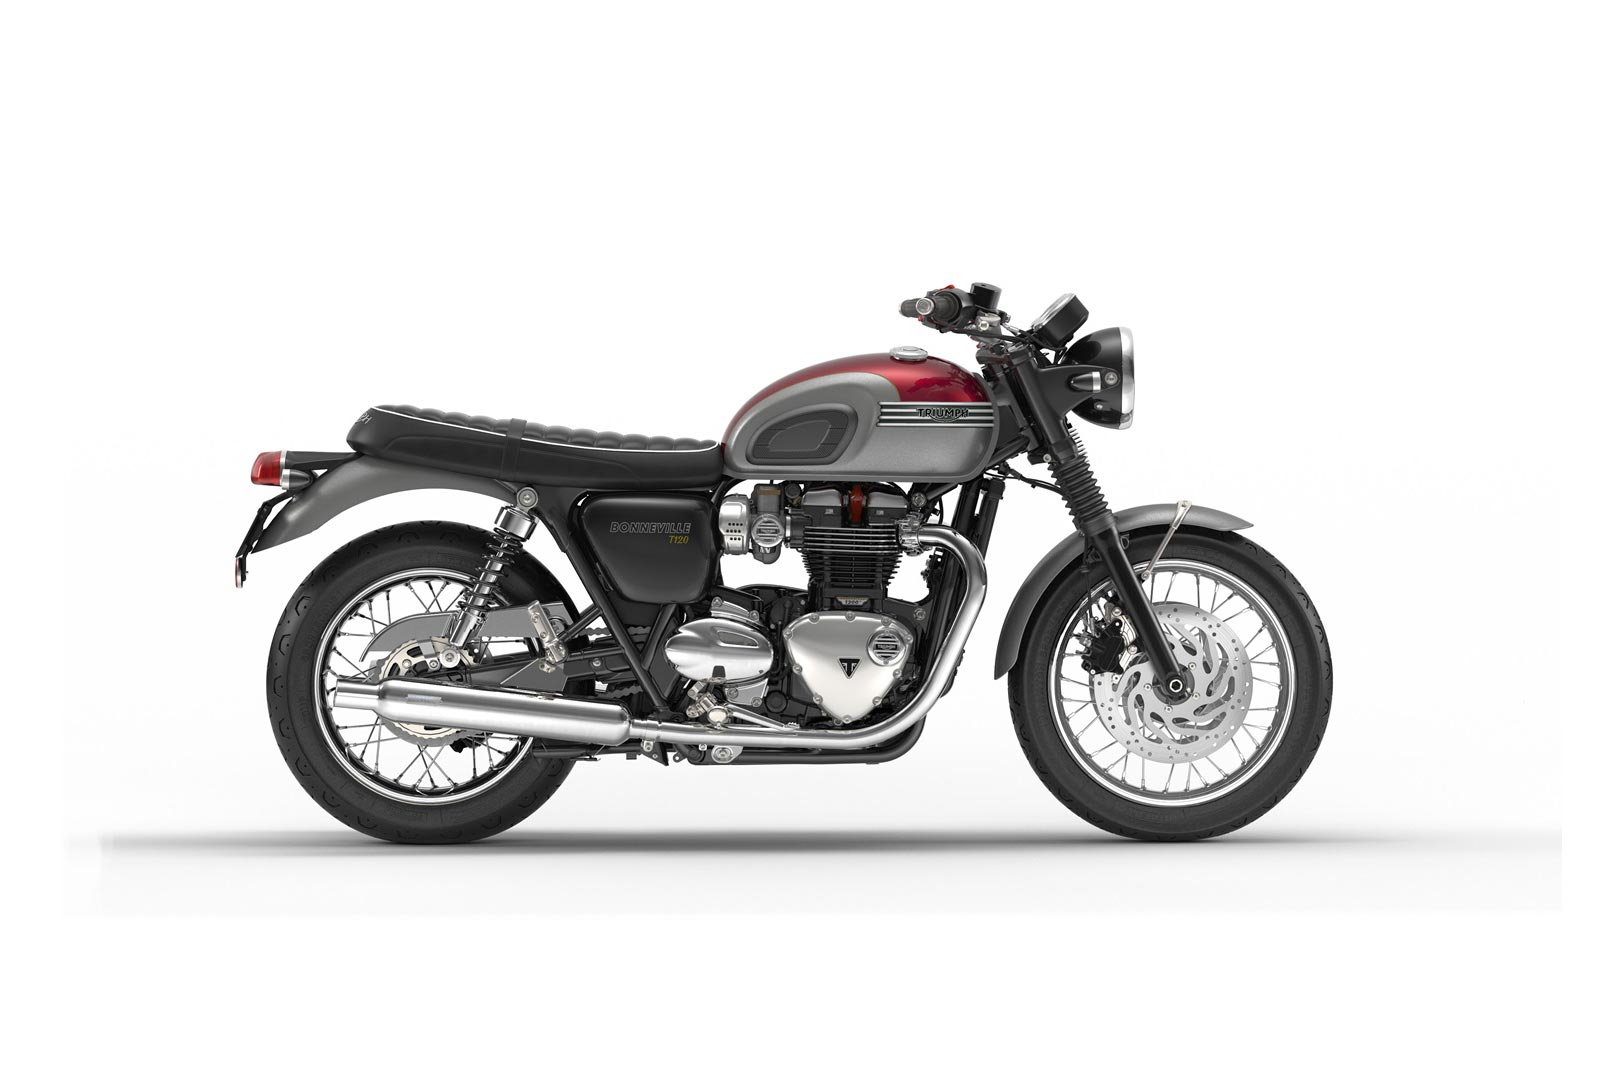 recall triumph bonneville t120 asphalt rubber. Black Bedroom Furniture Sets. Home Design Ideas